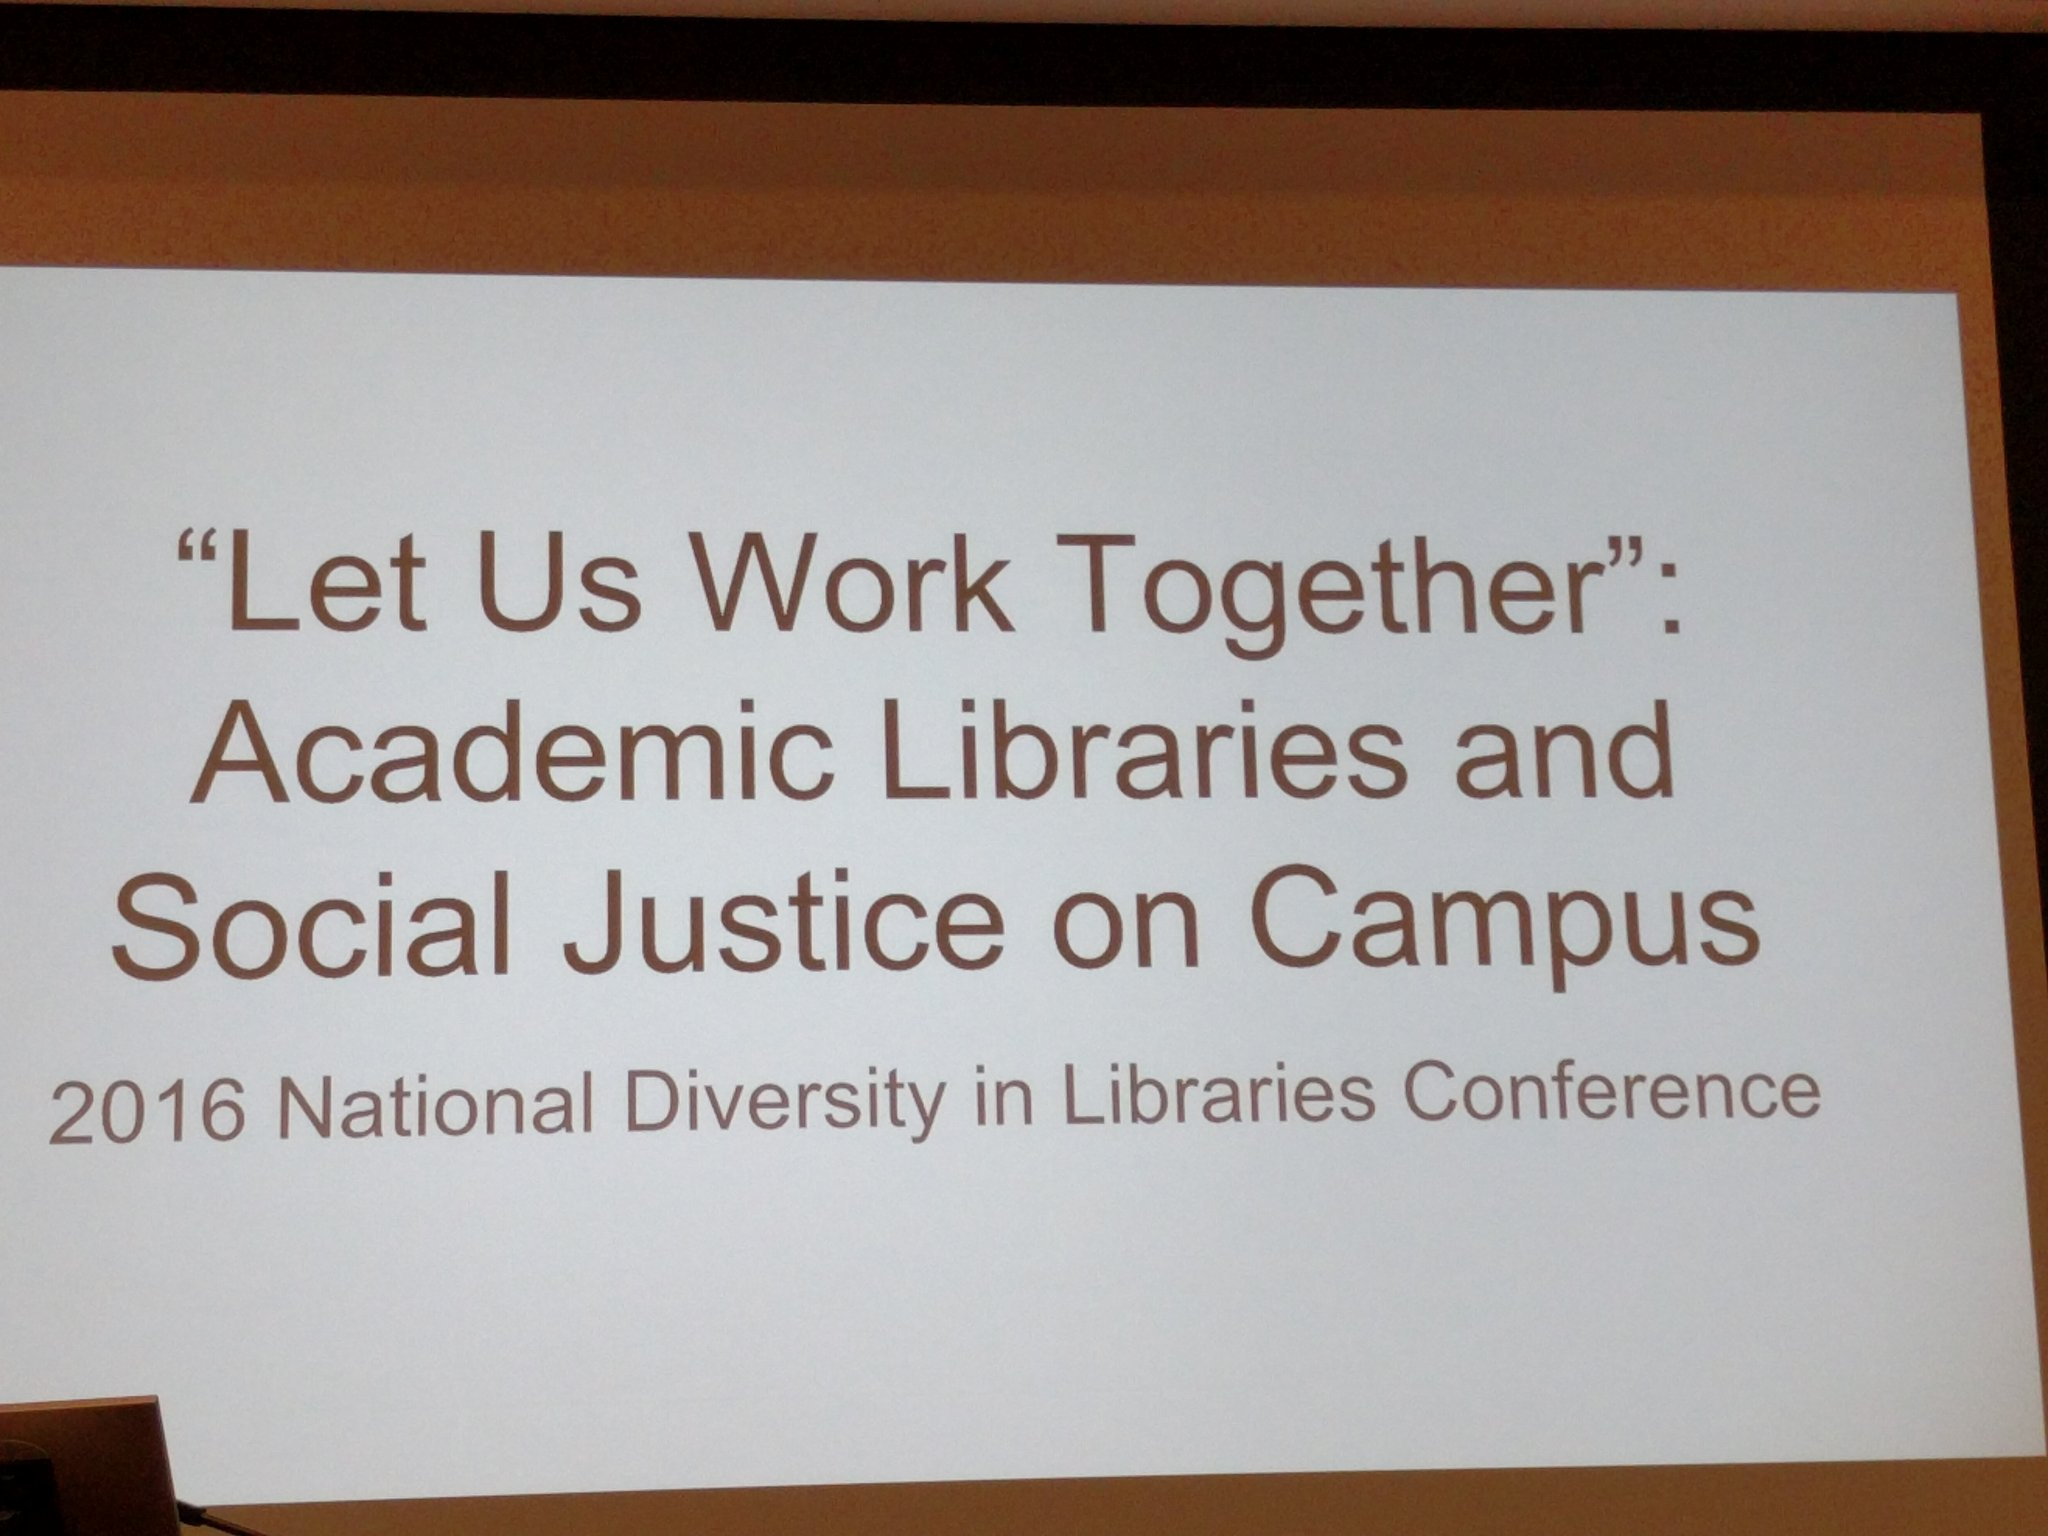 First concurrent session, no artificial barriers for students, librarians, scholar activists, #solidarity. #NDLC16 https://t.co/qmH55QKCIn